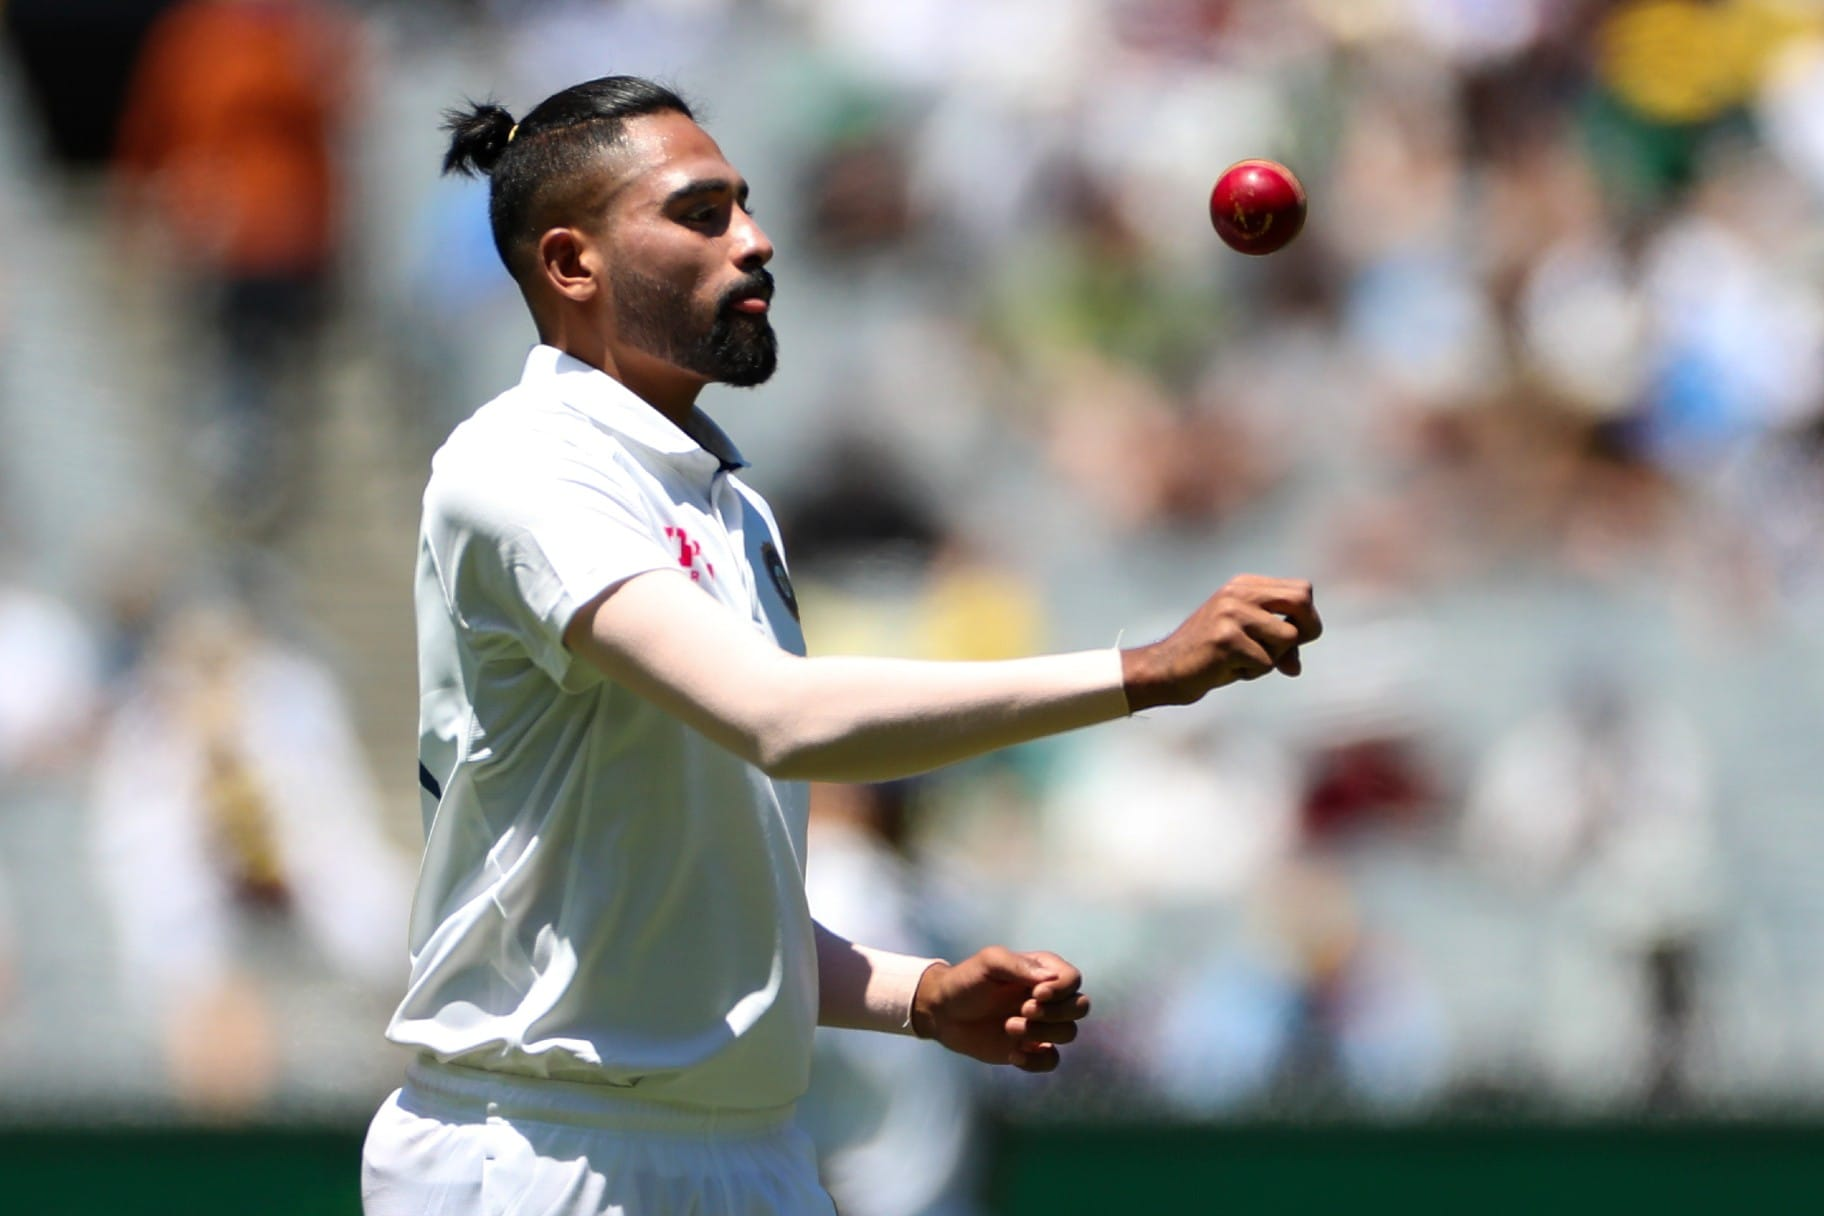 India vs Australia: With Jasprit Bumrah Injured, Two-Test Old Mohammed Siraj Could be the Unlikely Leader of India's Pace Battery at Brisbane